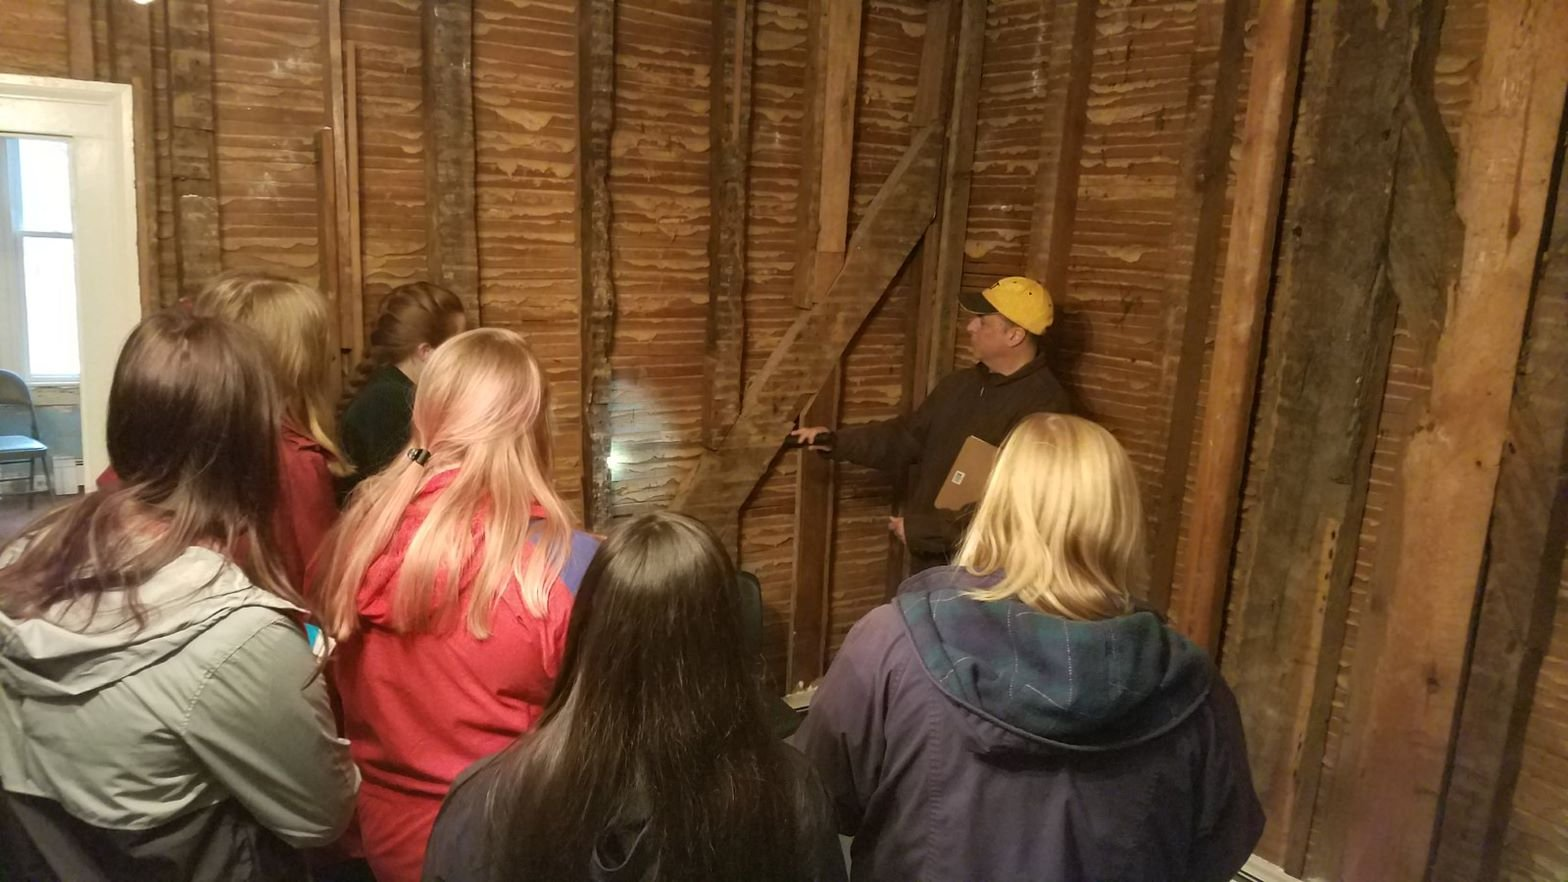 Liberty University history students viewing original architectural work inside Mead's Tavern.